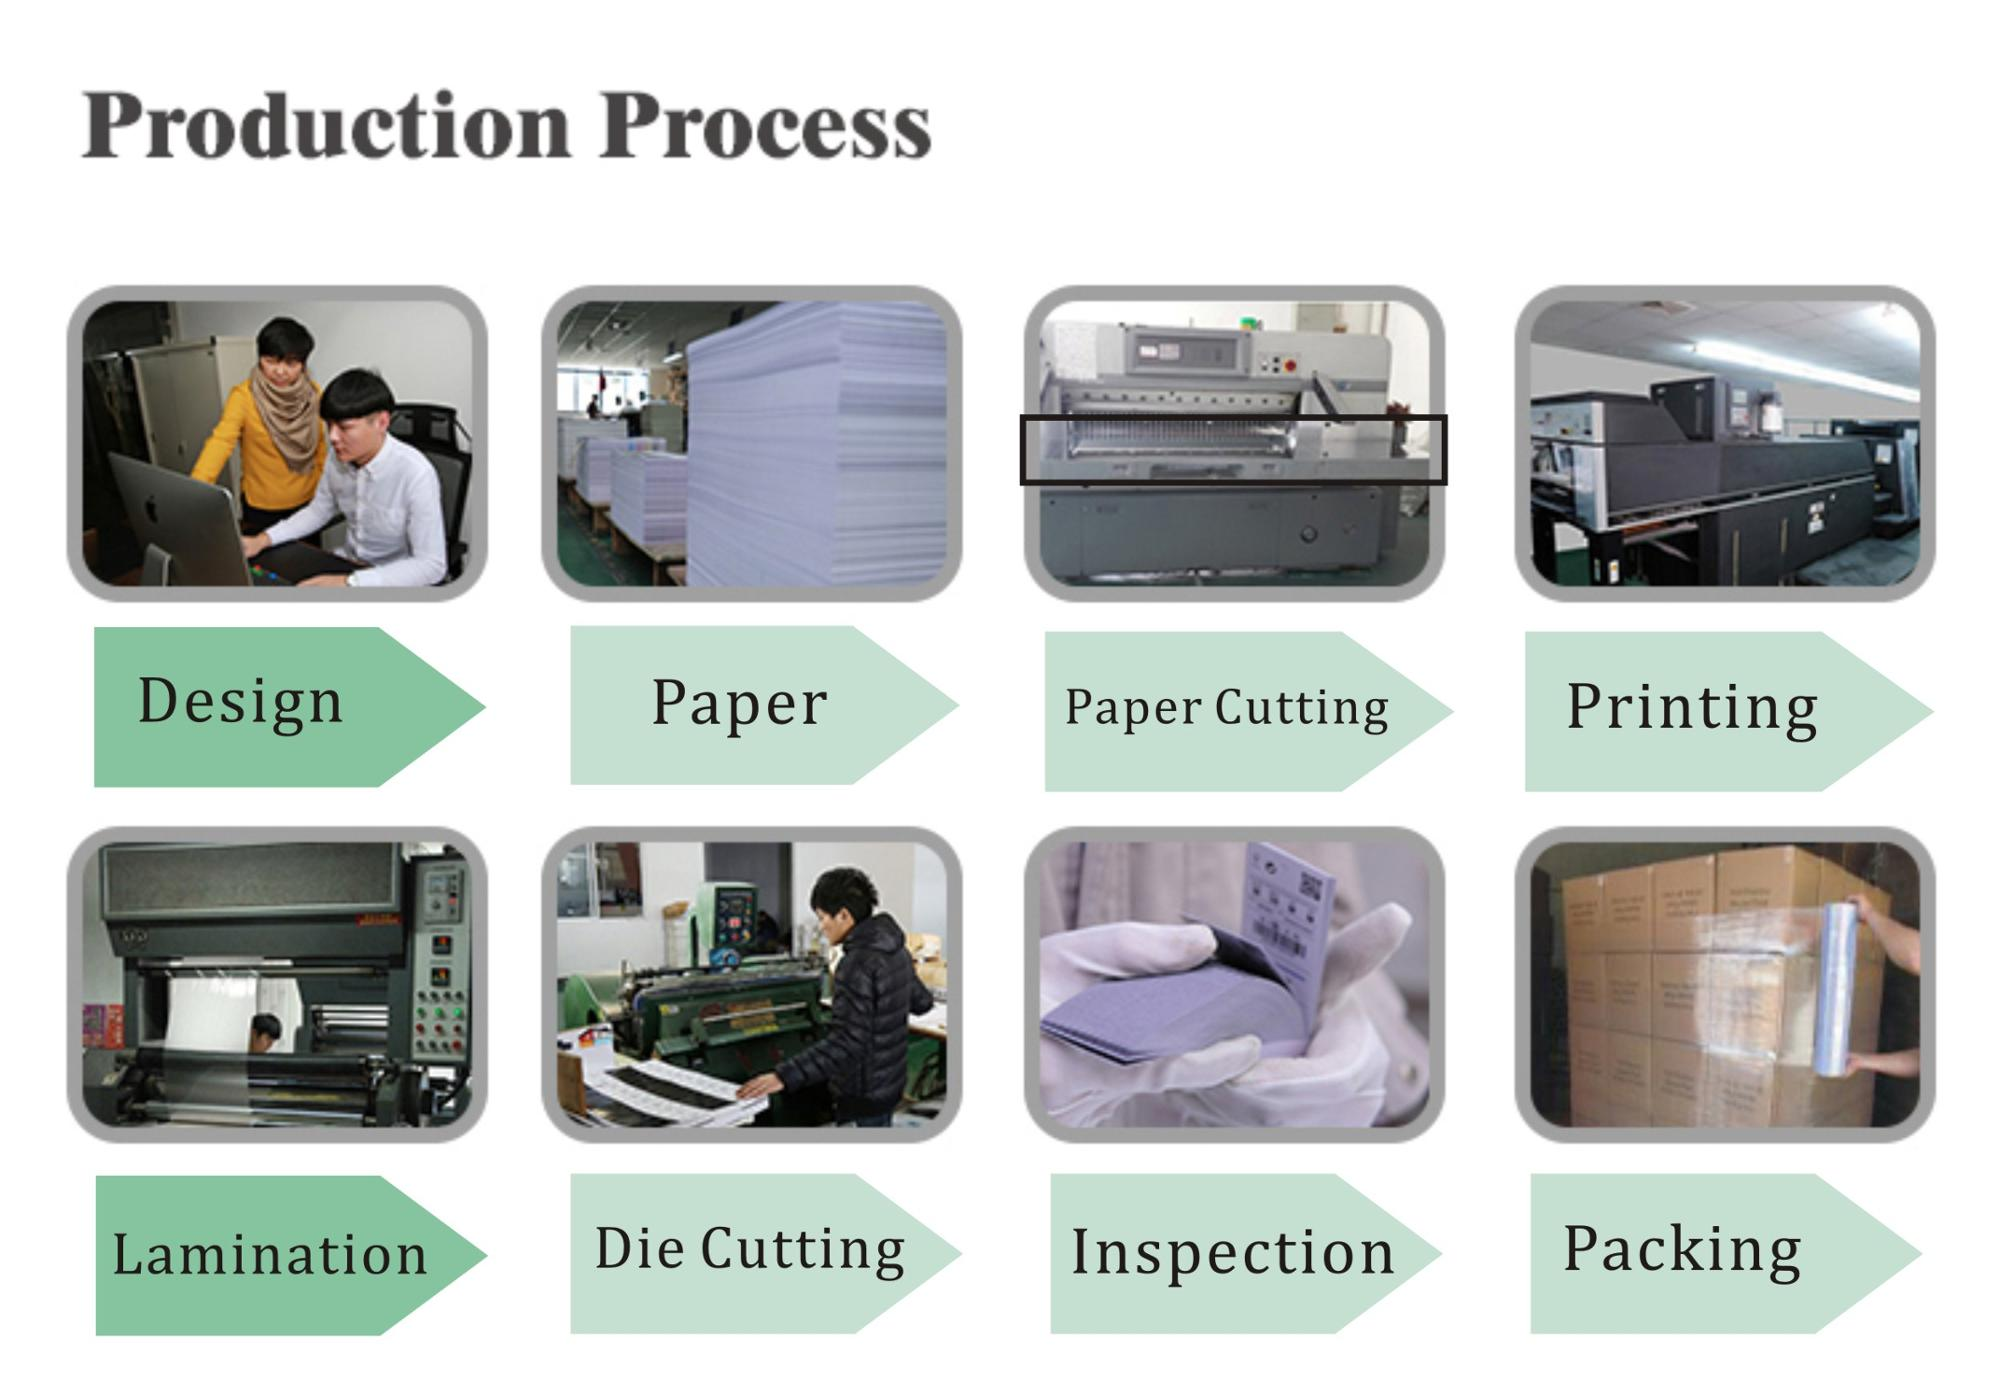 Production Process.jpg